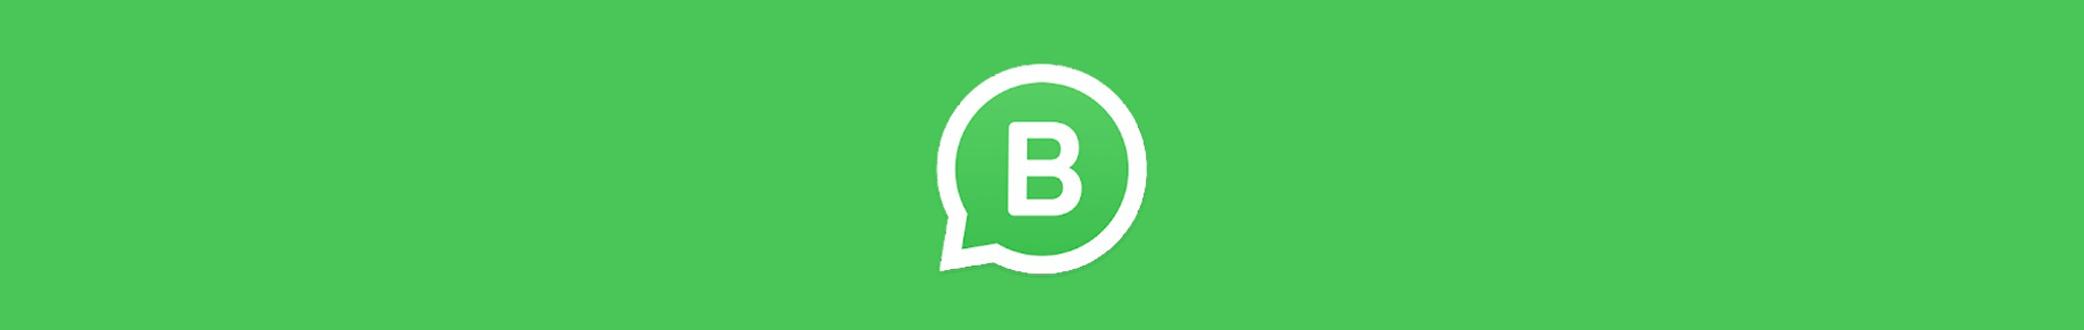 WhatsApp Business banner